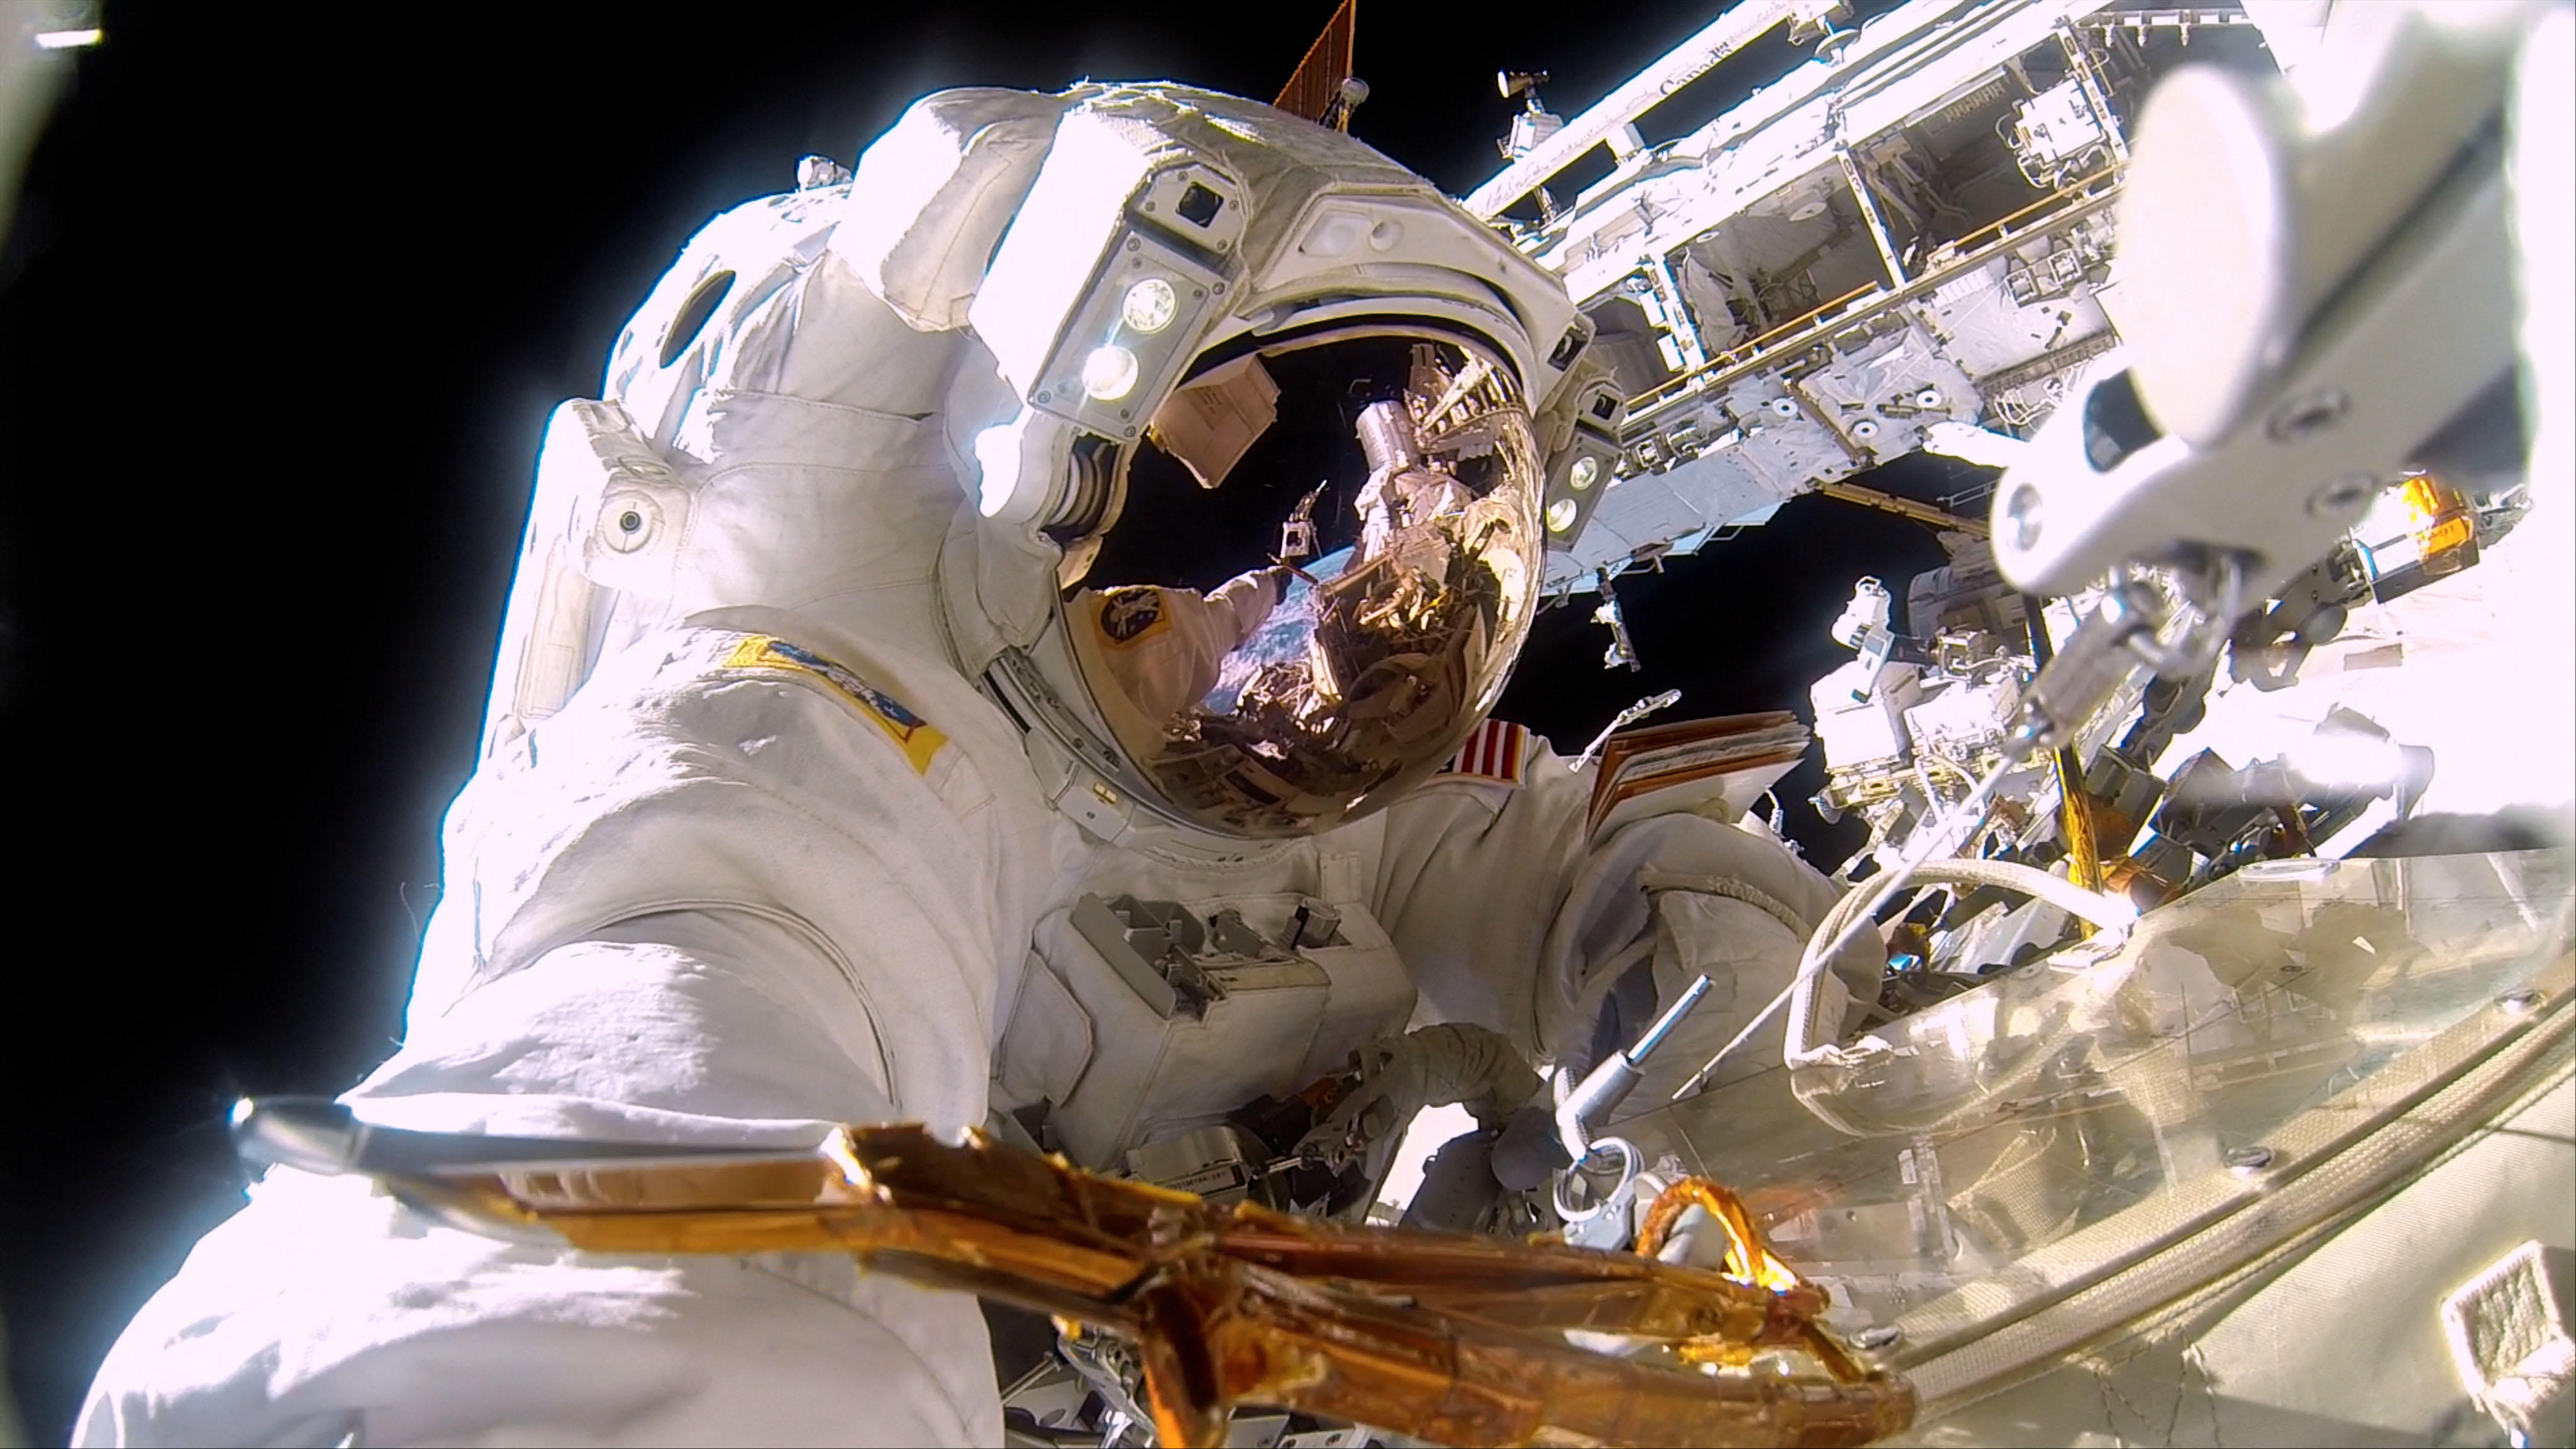 A NASA astronaut on a spacewalk to repair the exterior of the International Space Station. It's almost 300° on the sun side of the space station and -275° in the shade.